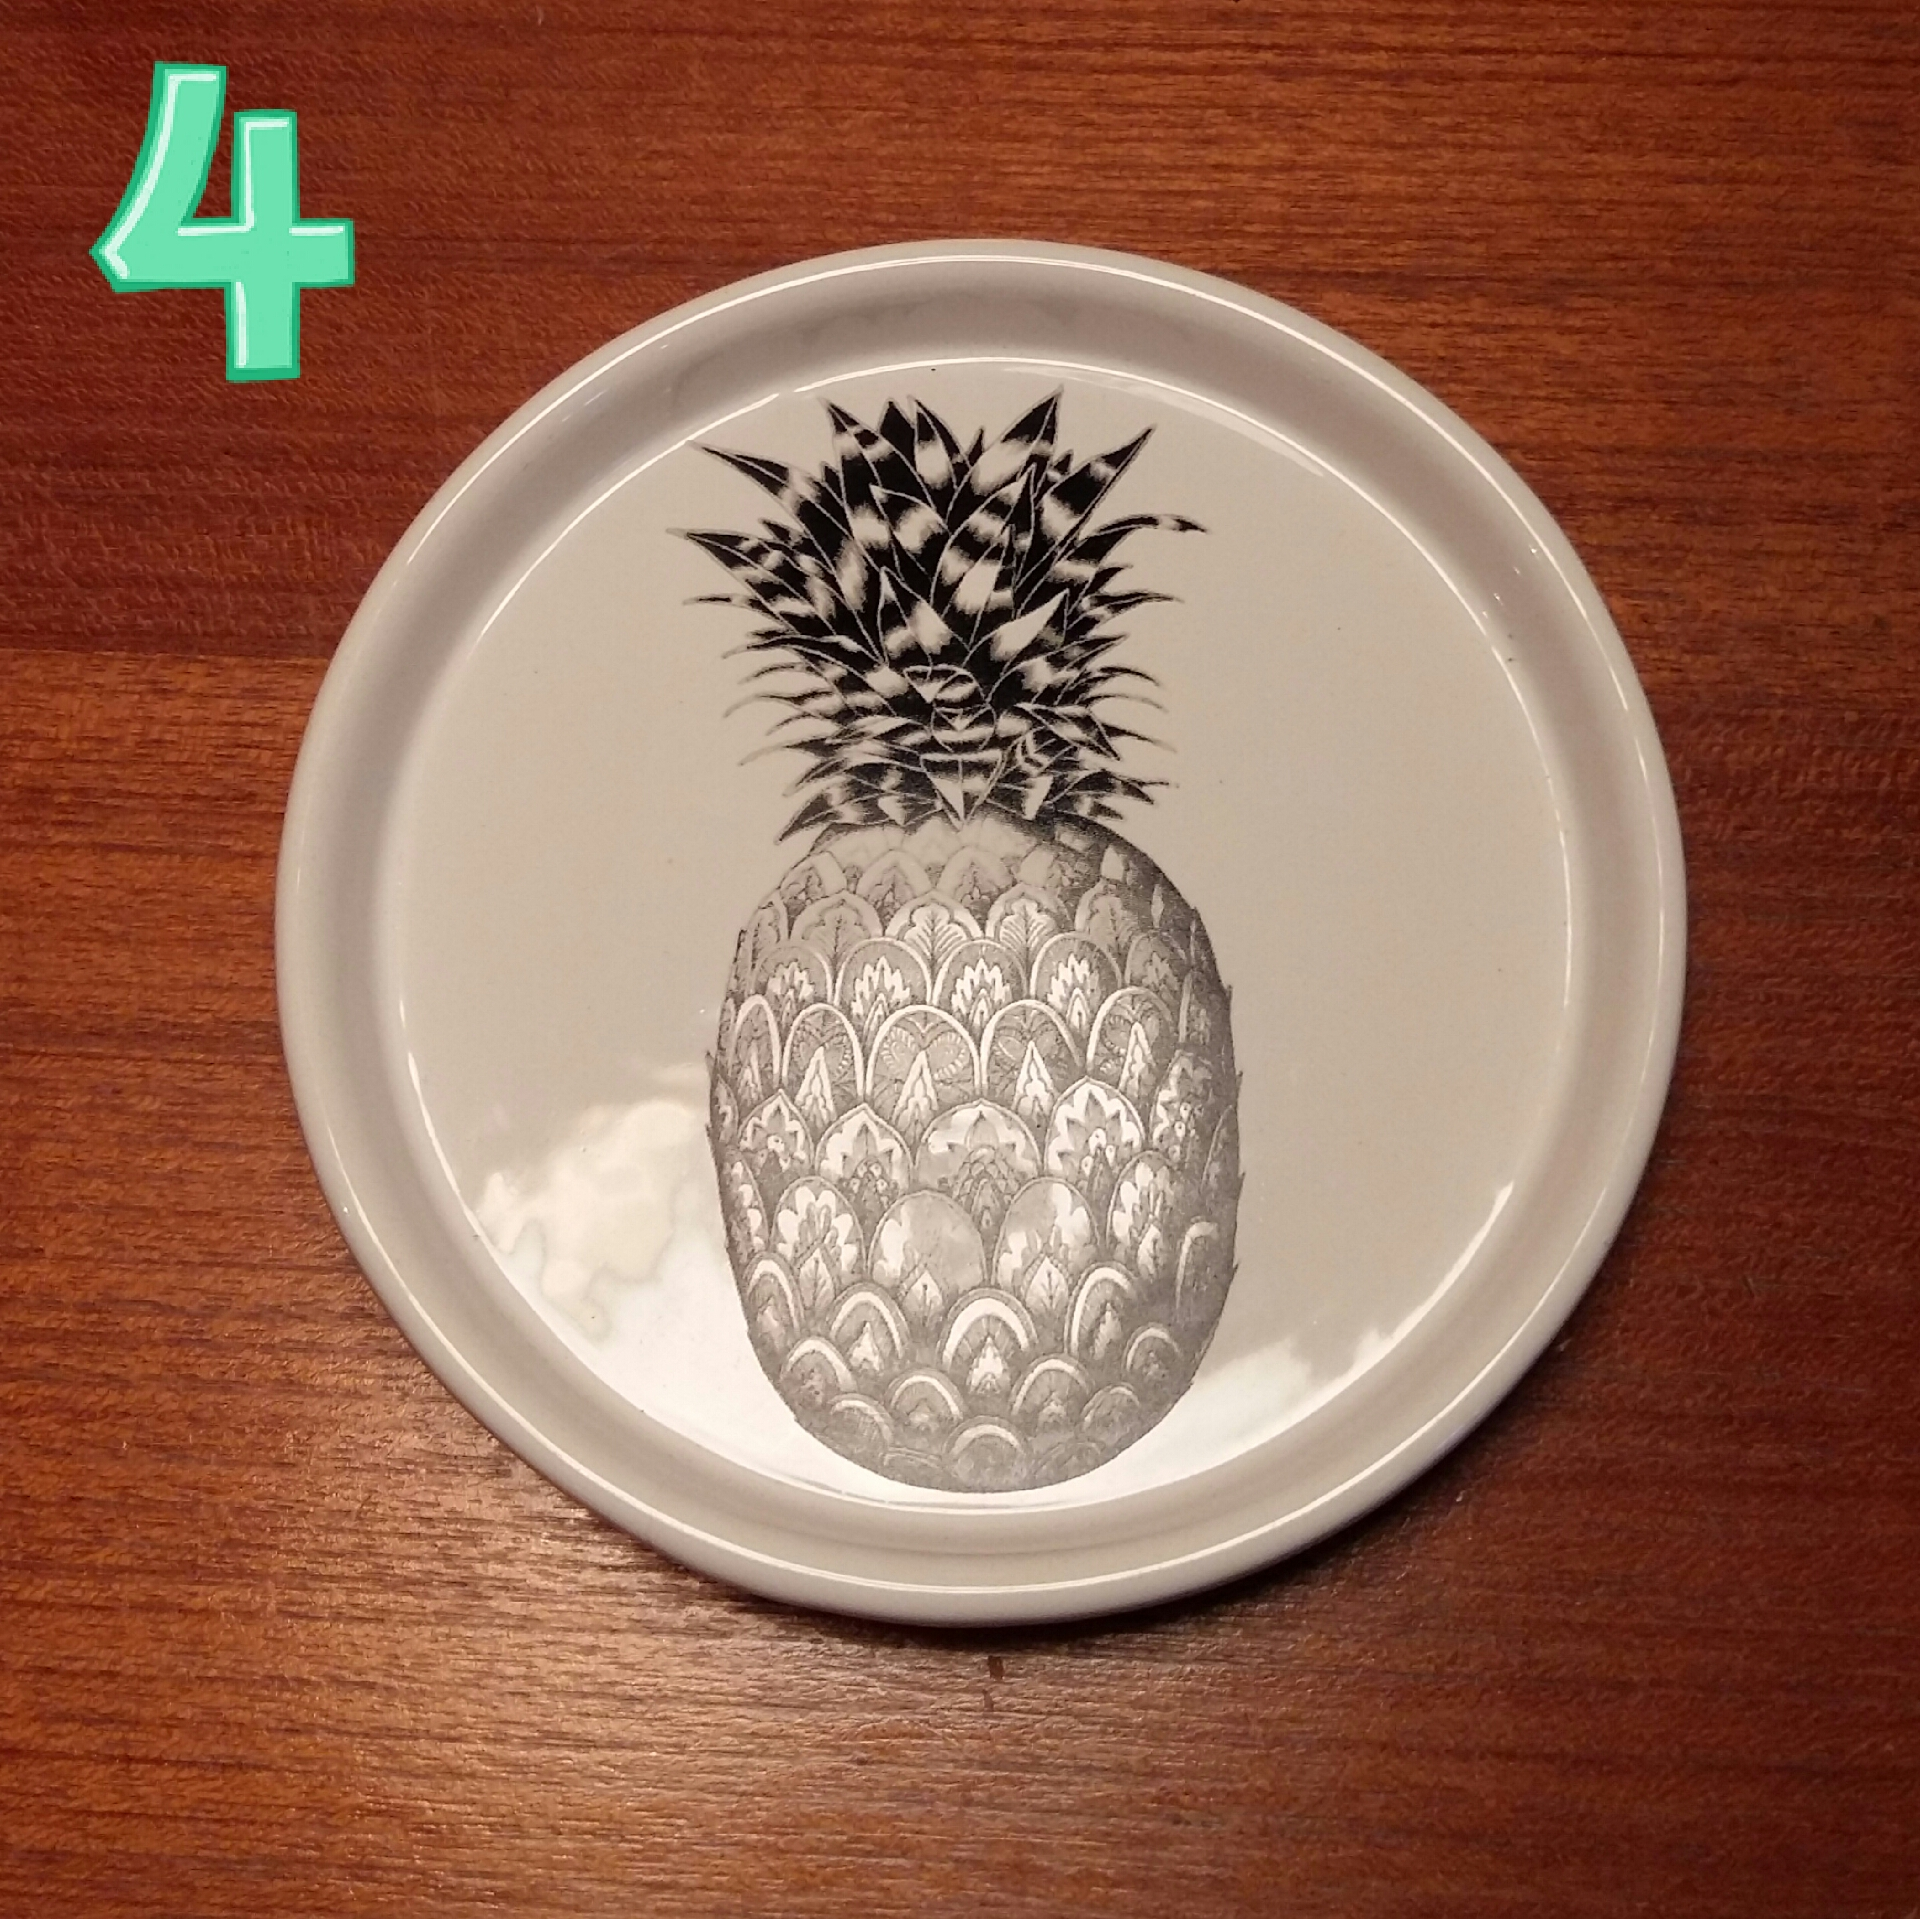 Pineapple printed dish £4.50